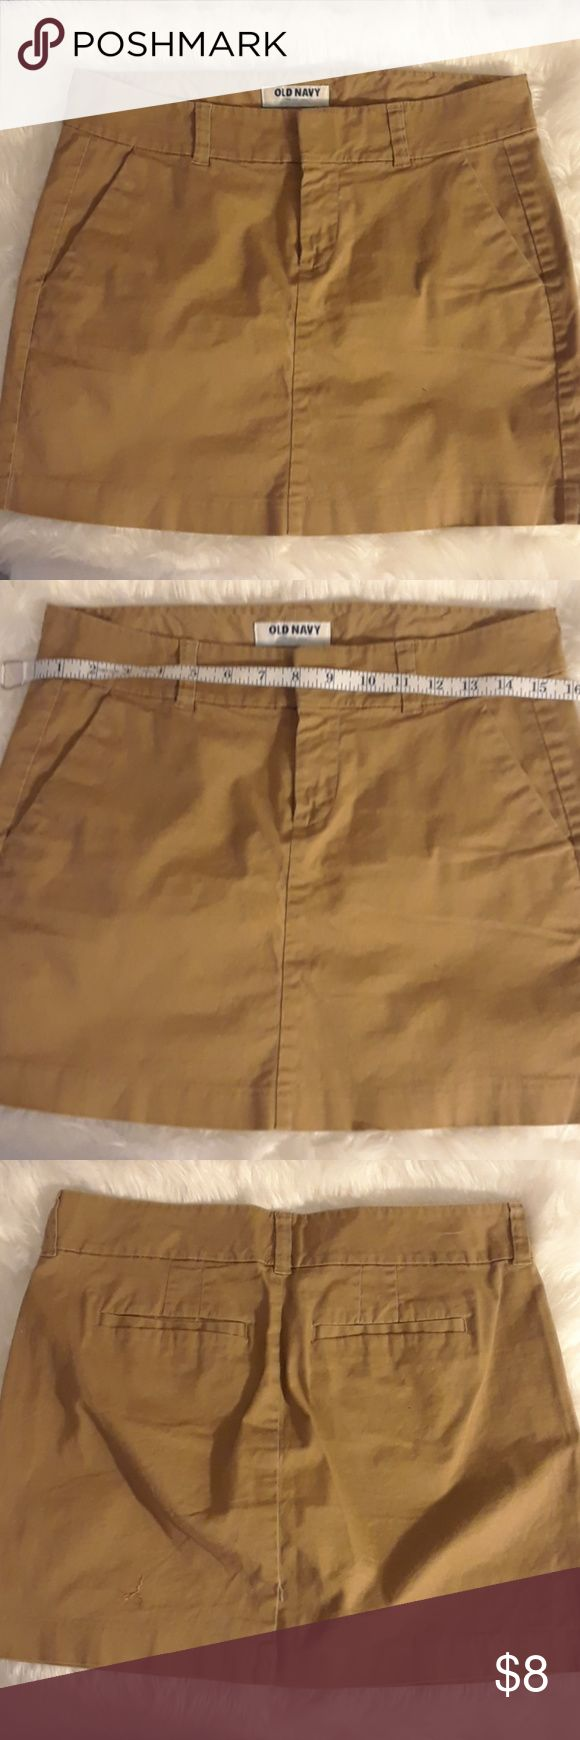 Old Navy Khacki Mini Skirt Preowned, still in very good condition without any pulls, holes, stains or markings as shown in pictures Old Navy Skirts Mini